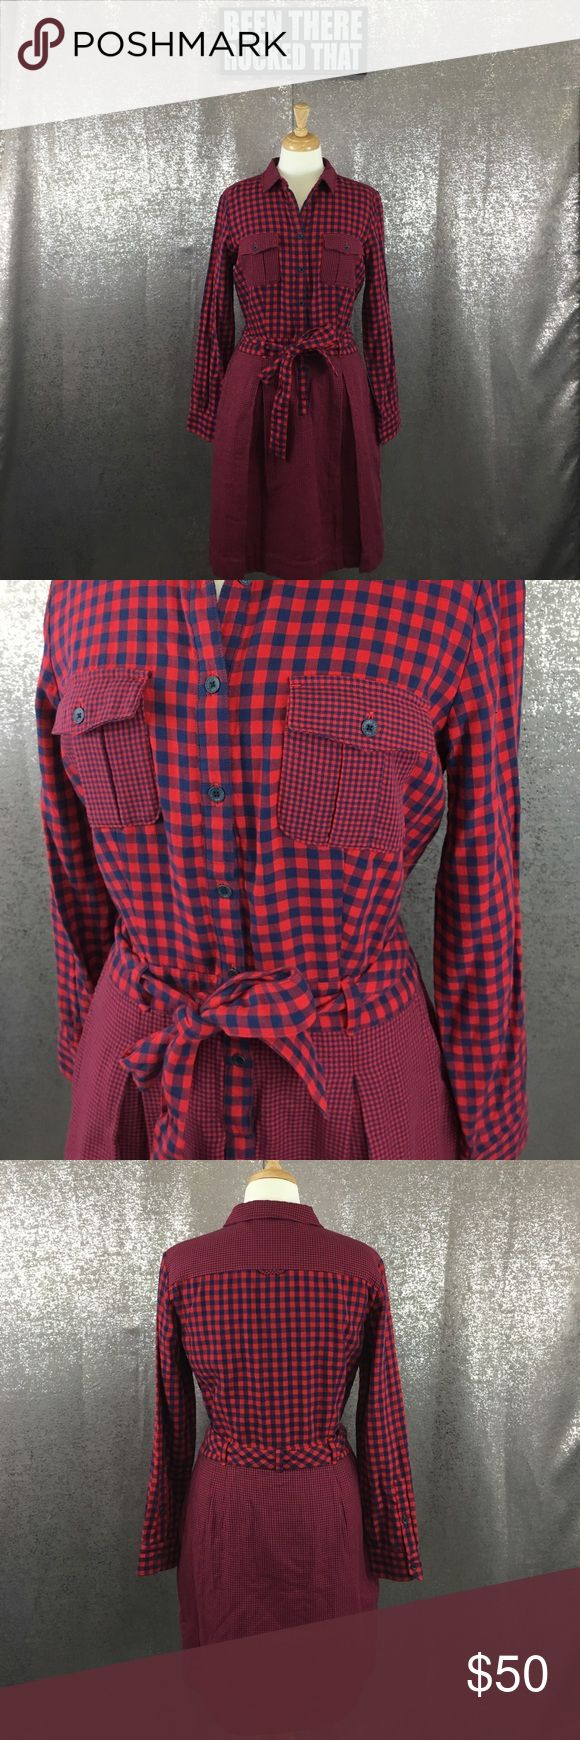 Brooks brother red fleece plaid shirt dress In excellent preowned condition Brooks Brothers Dresses